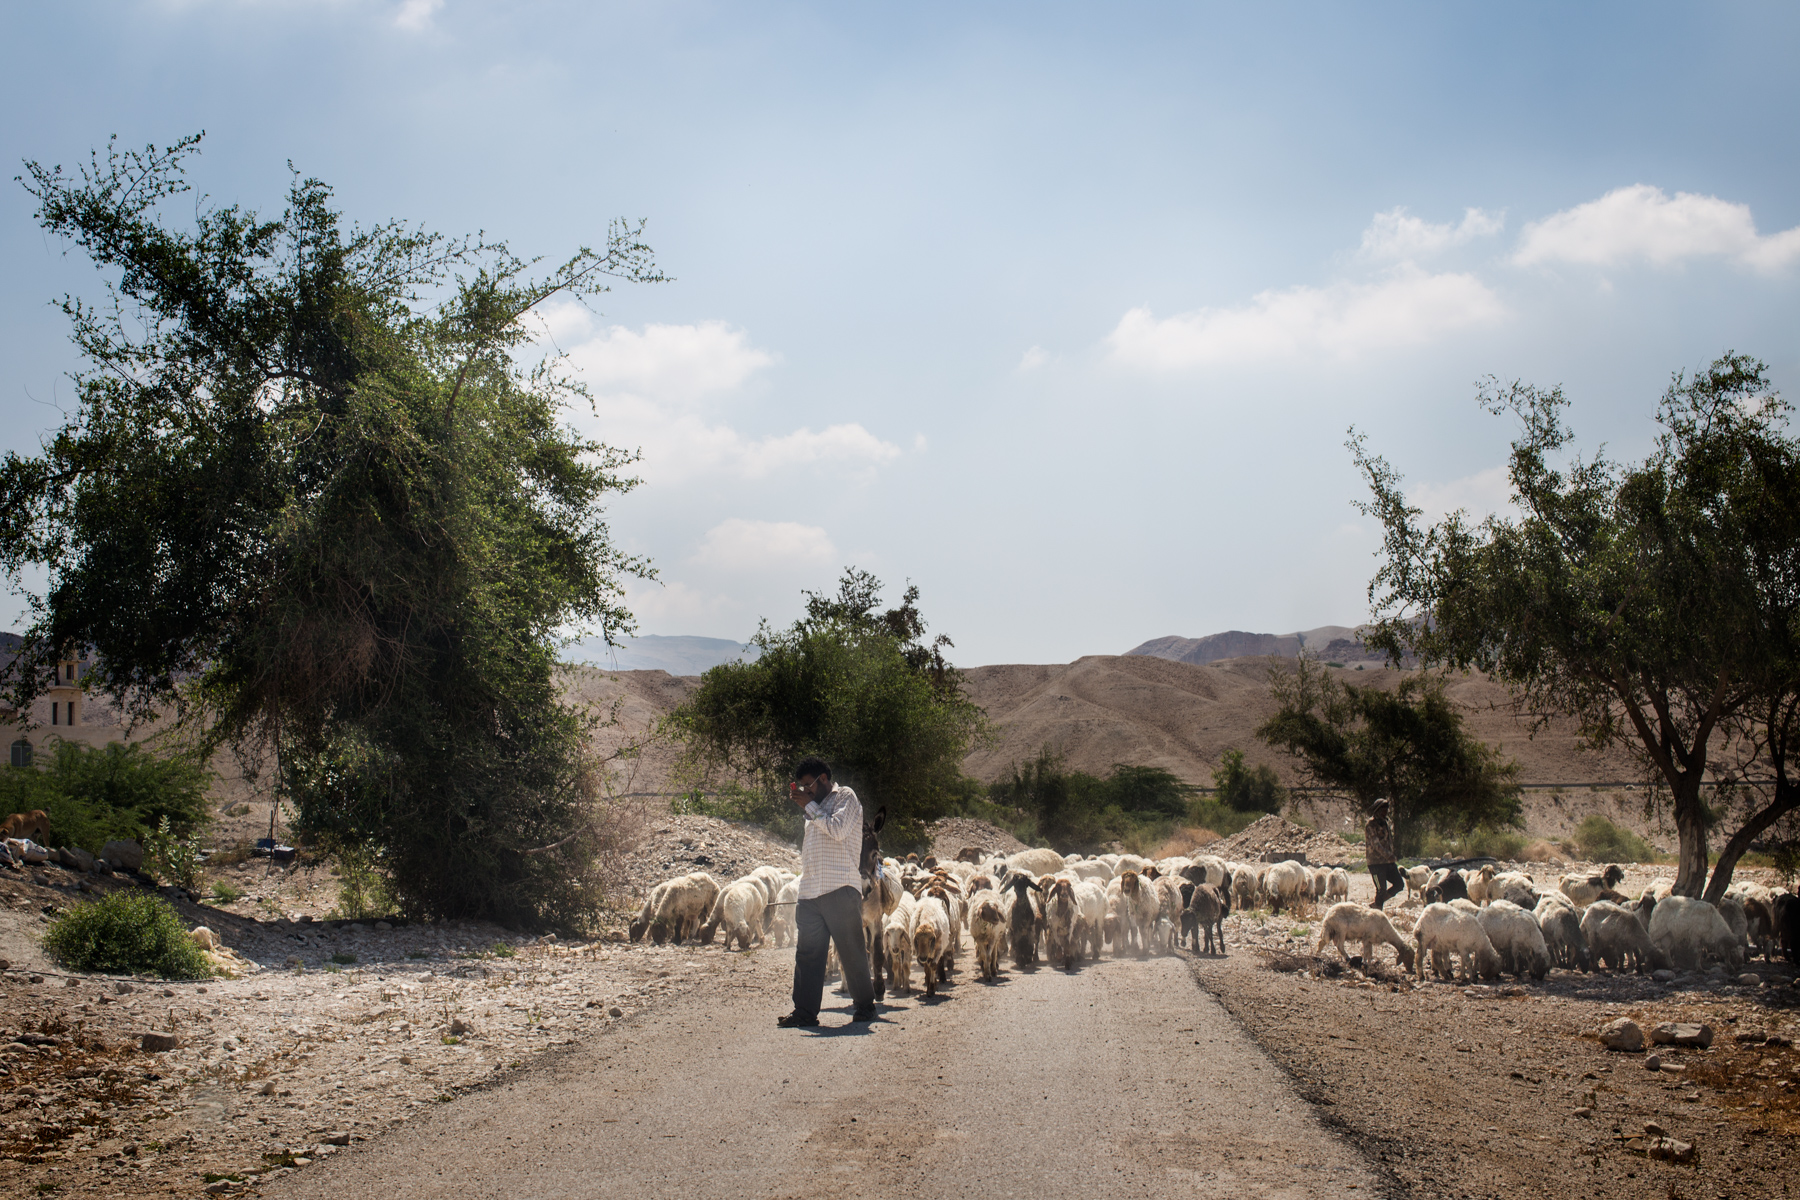 A shepherd leads his flock of sheep through agricultural land near the Dead Sea in Ghor Safi, Jordan, on May 4, 2015.